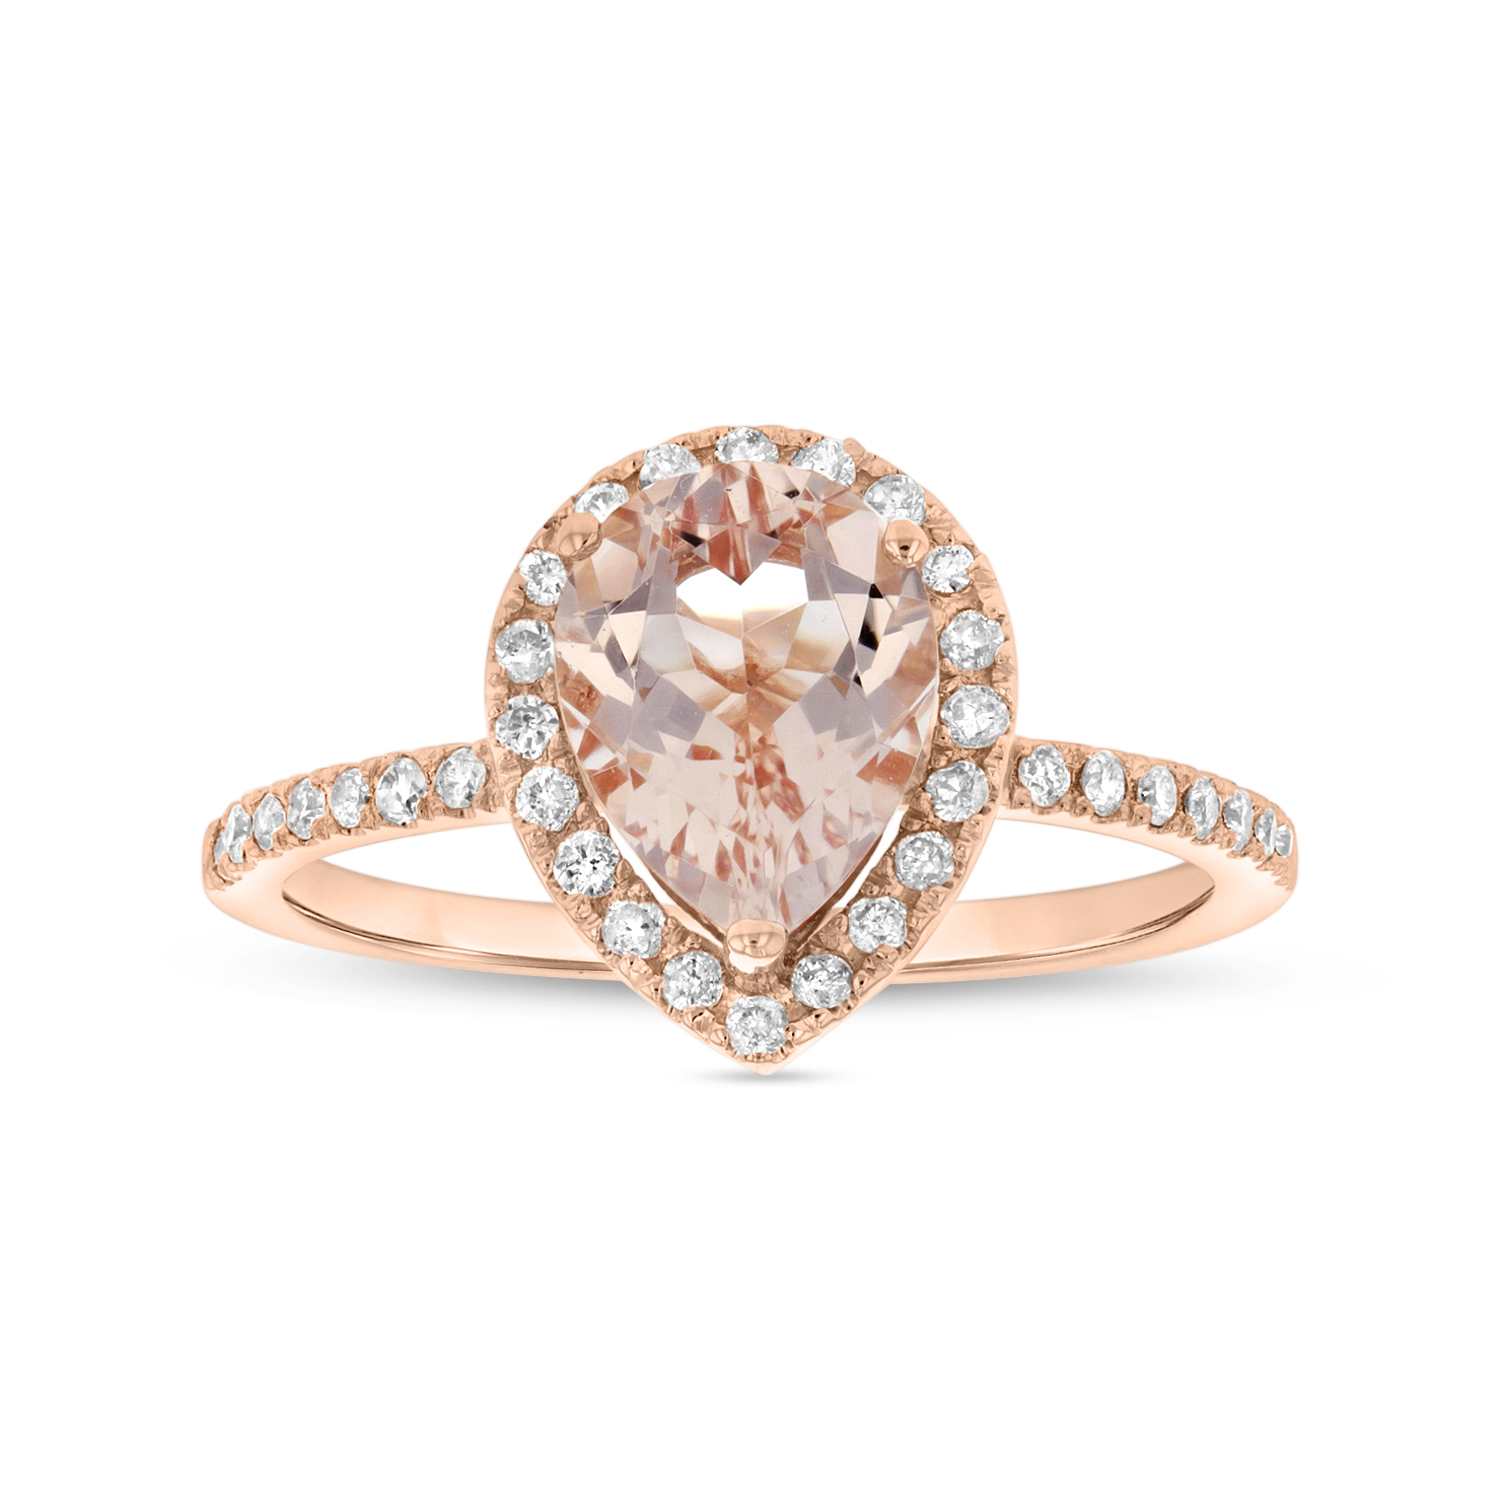 View 9X7 mm Pear Shape Morganite and Diamond Ring in 14k Rose Gold